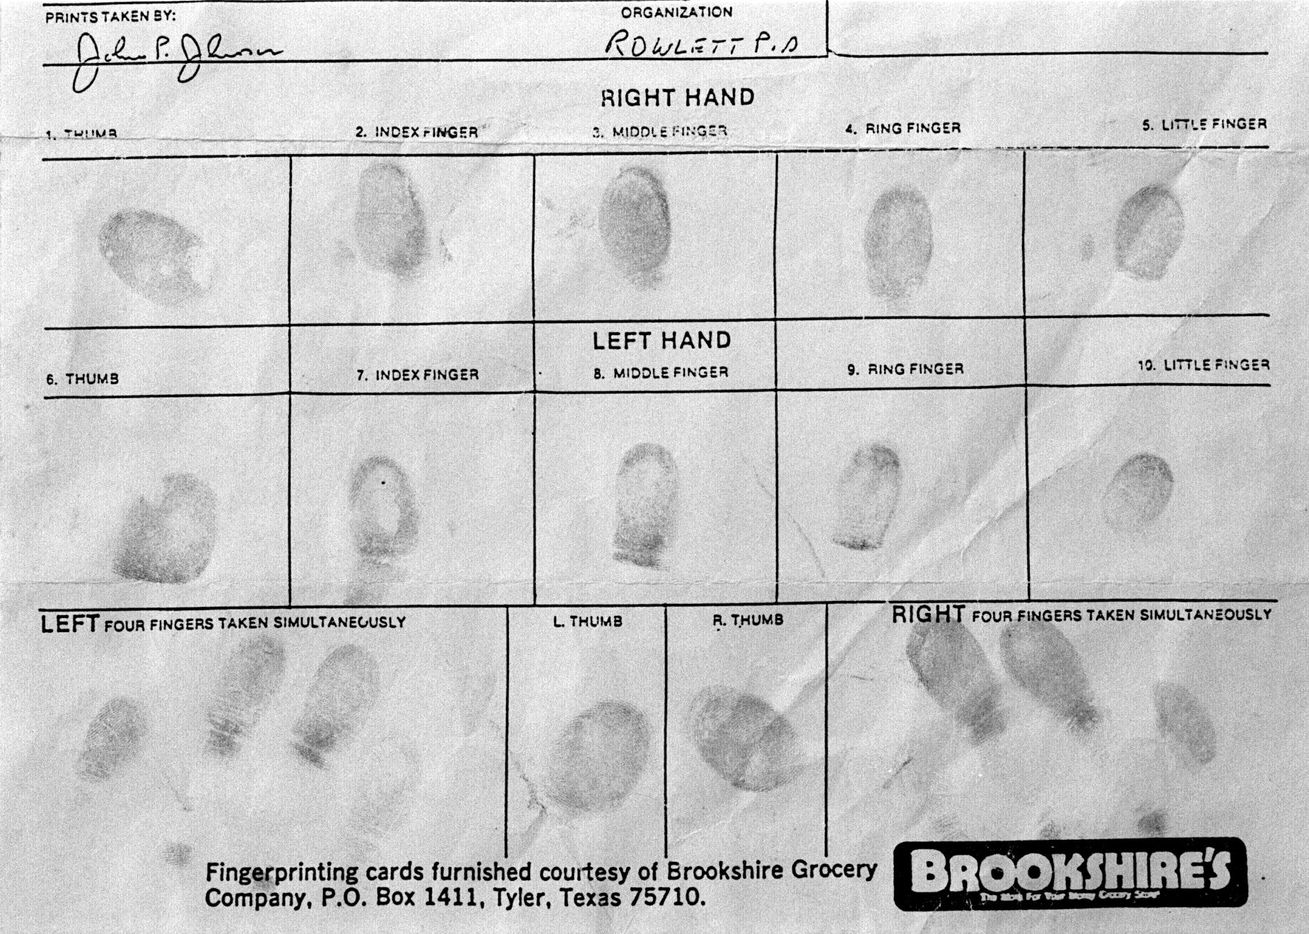 This fingerprint document, reportedly to show the fingerprints of slaying victim Devon Routier, was copied in the law office of Stephen Cooper.